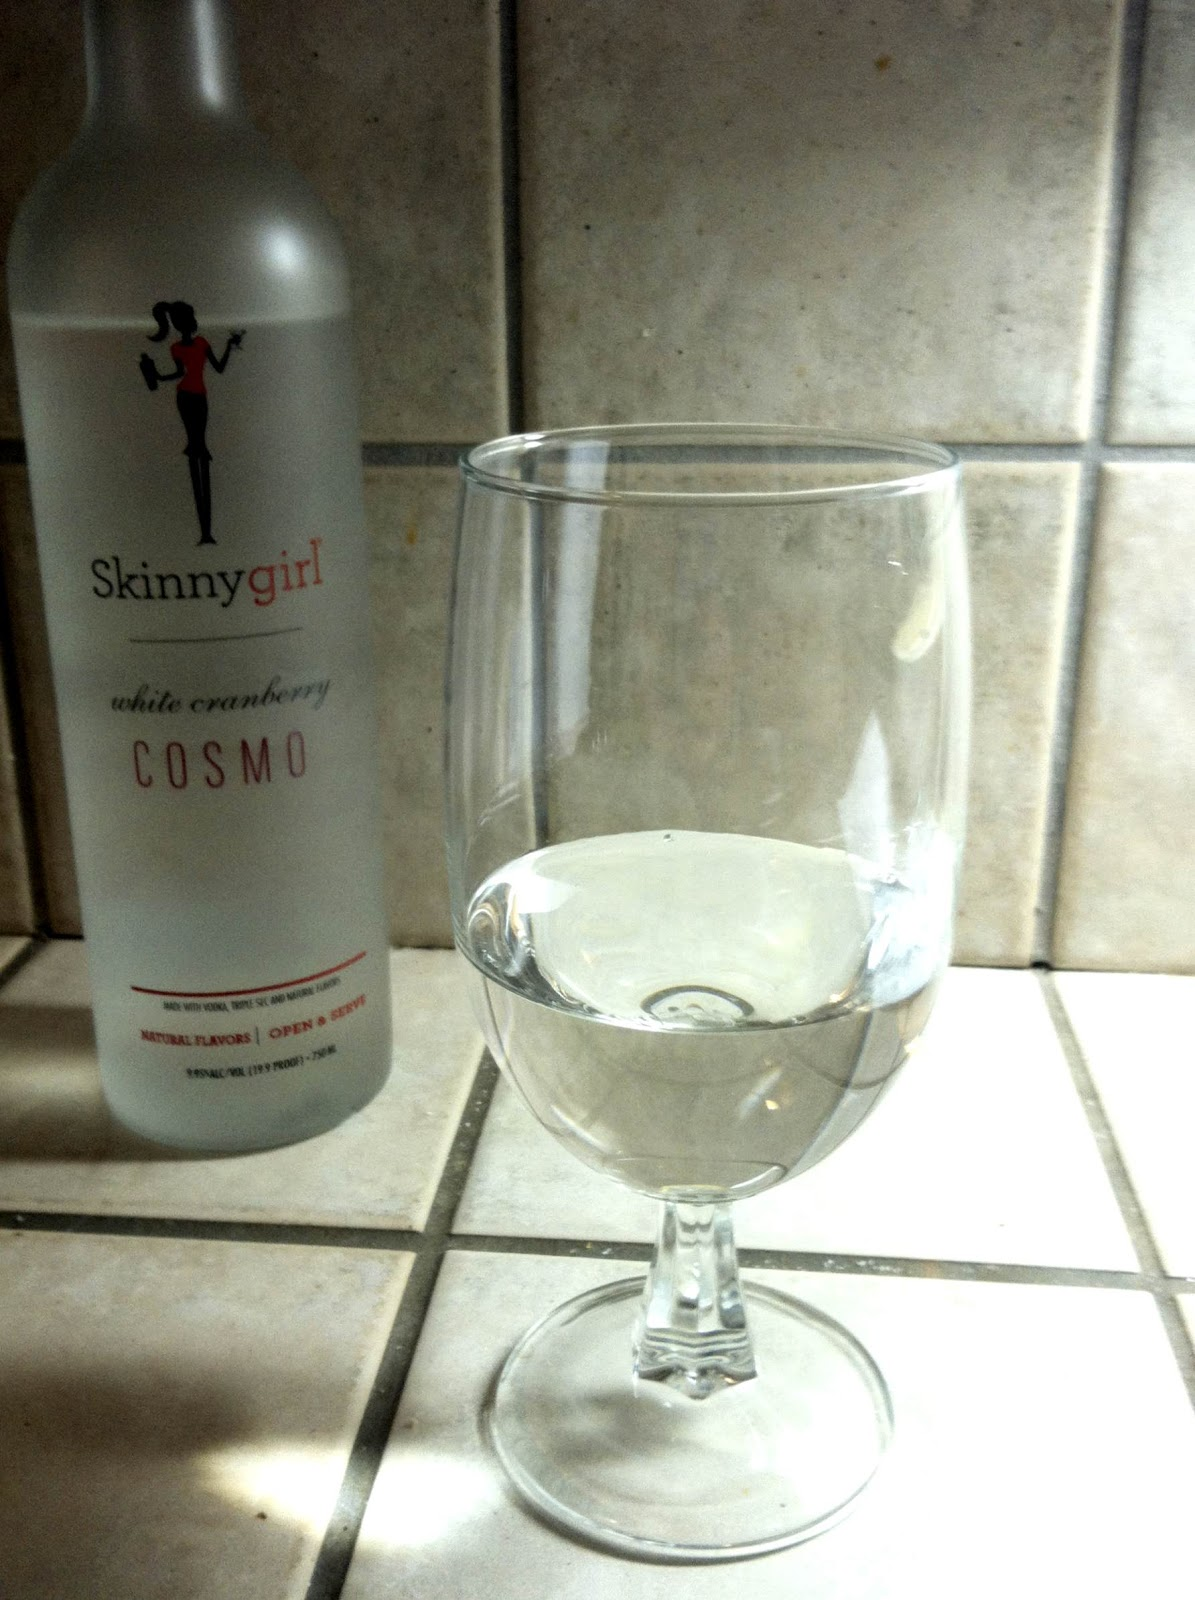 Review: Skinnygirl White Cranberry Cosmo